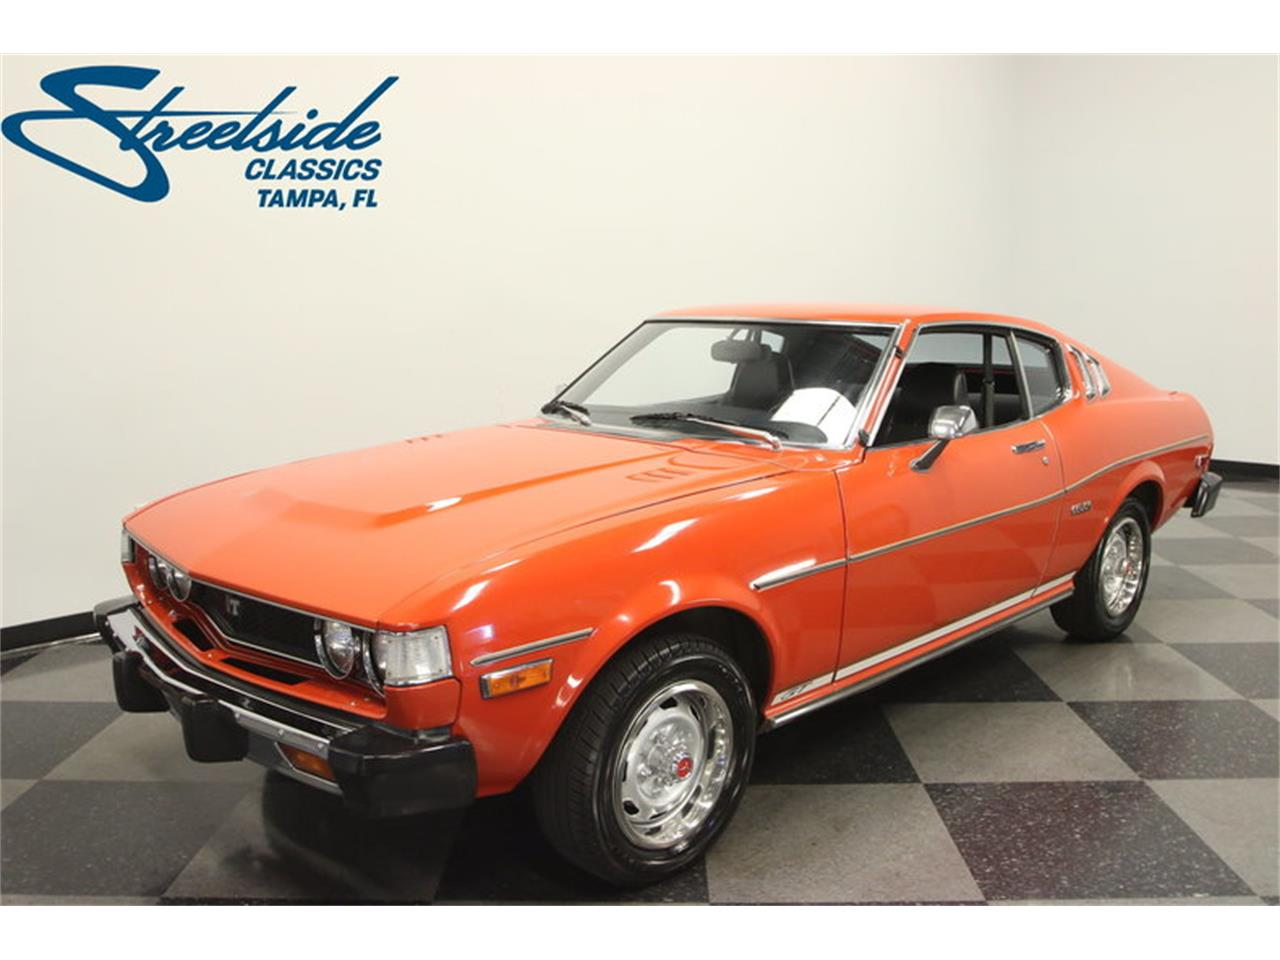 1976 Toyota Celica Gt All Cars T 1973 Liftback 2000 Large Picture Of 1599500 N69k